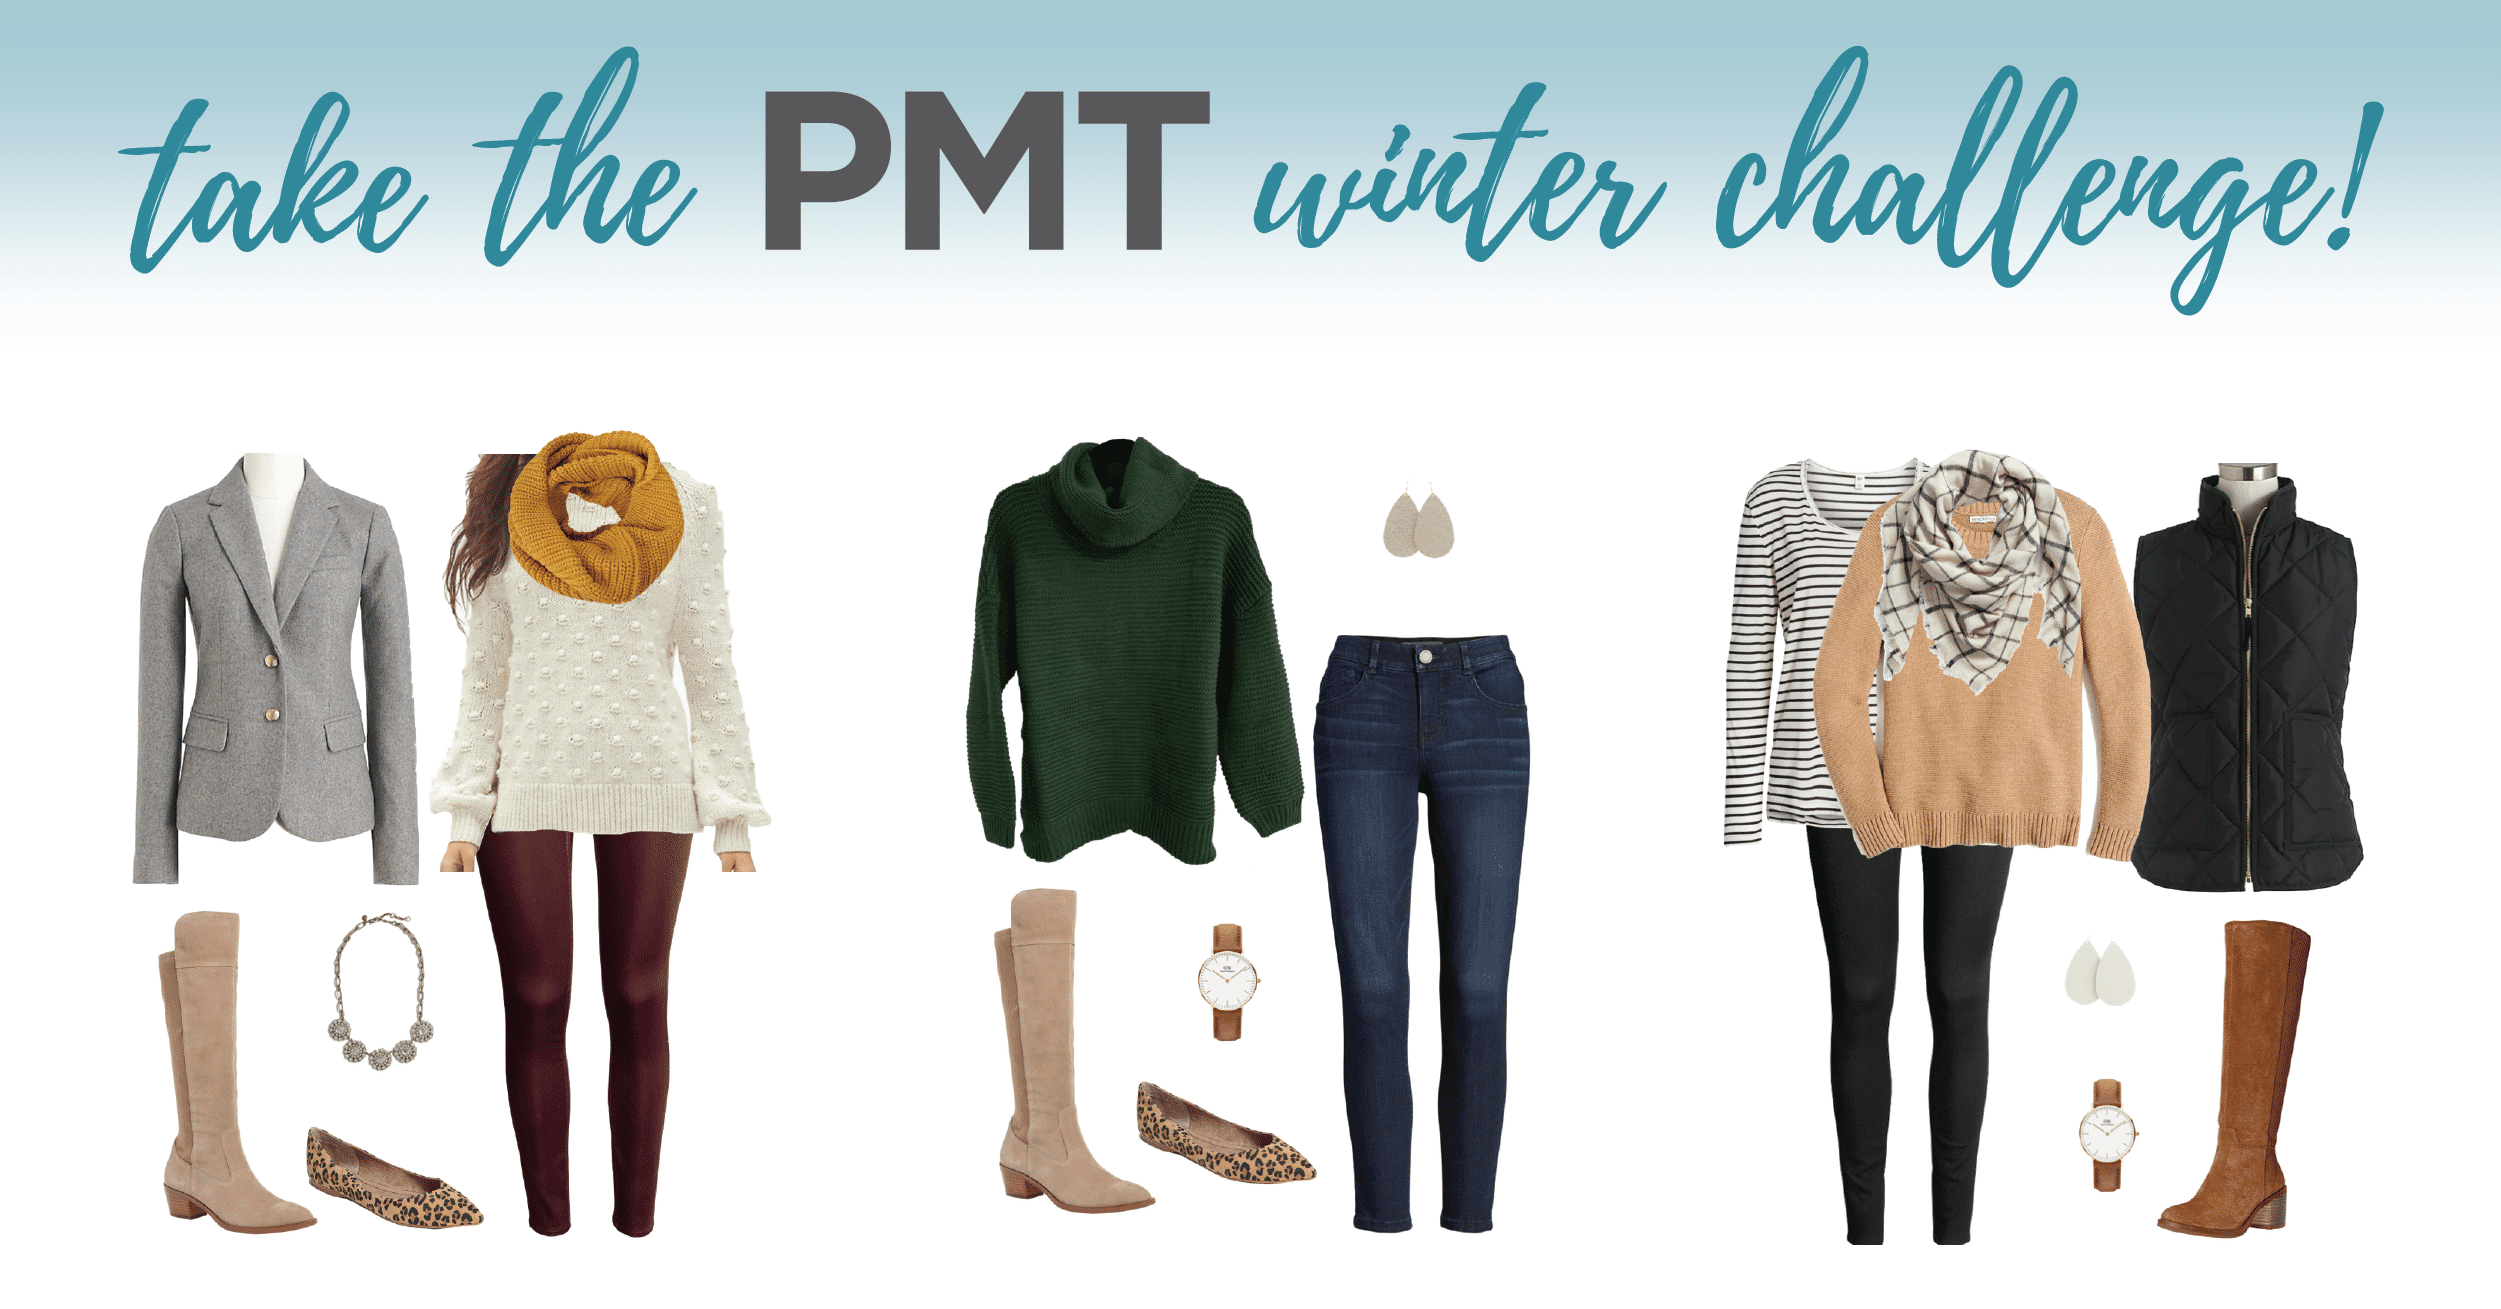 Join the Winter Outfit Challenge